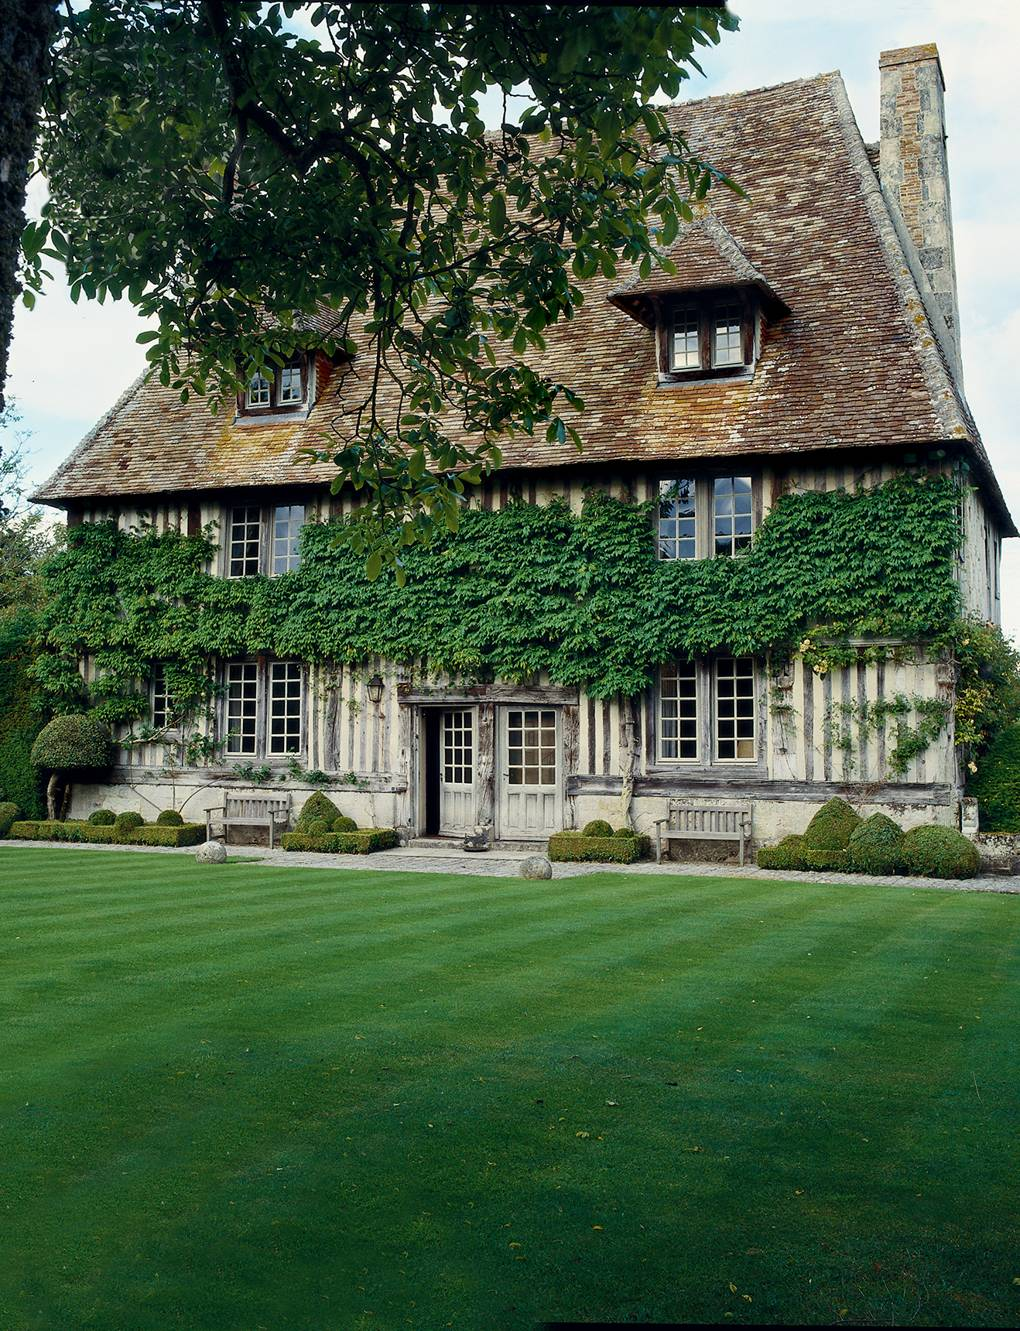 A refined Normandy manor house with formal gardens designed by Russell Page